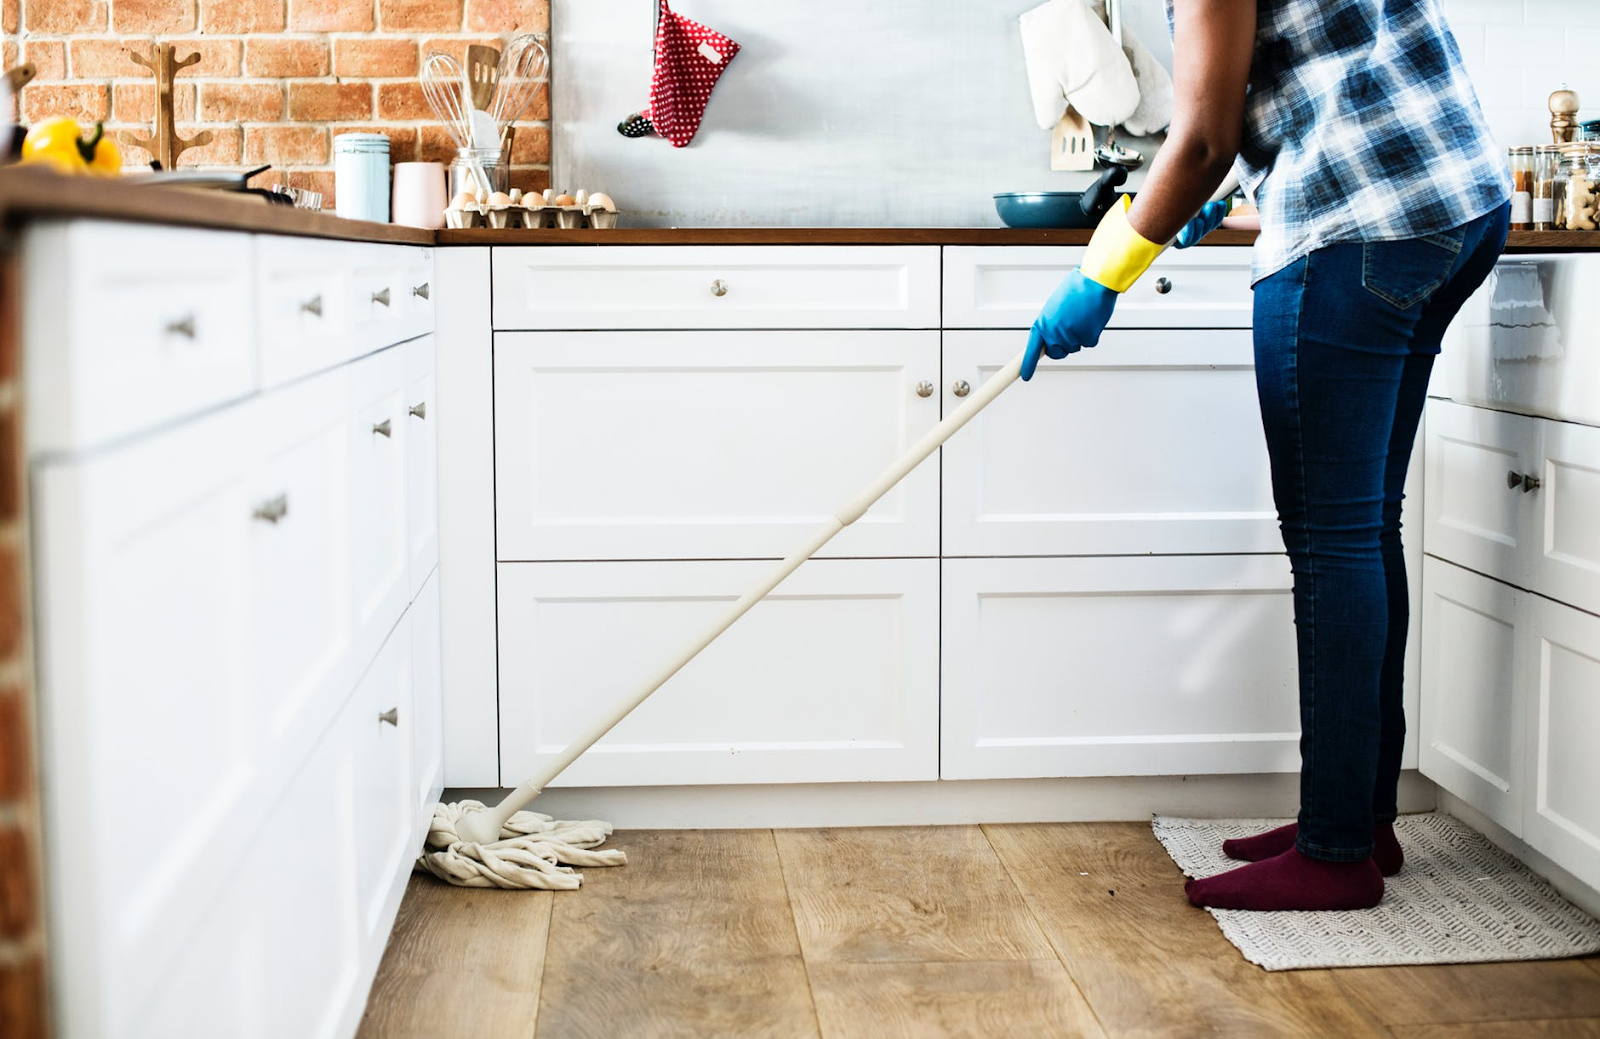 What Cleaning Essentials Do I Need To Clean My Home?